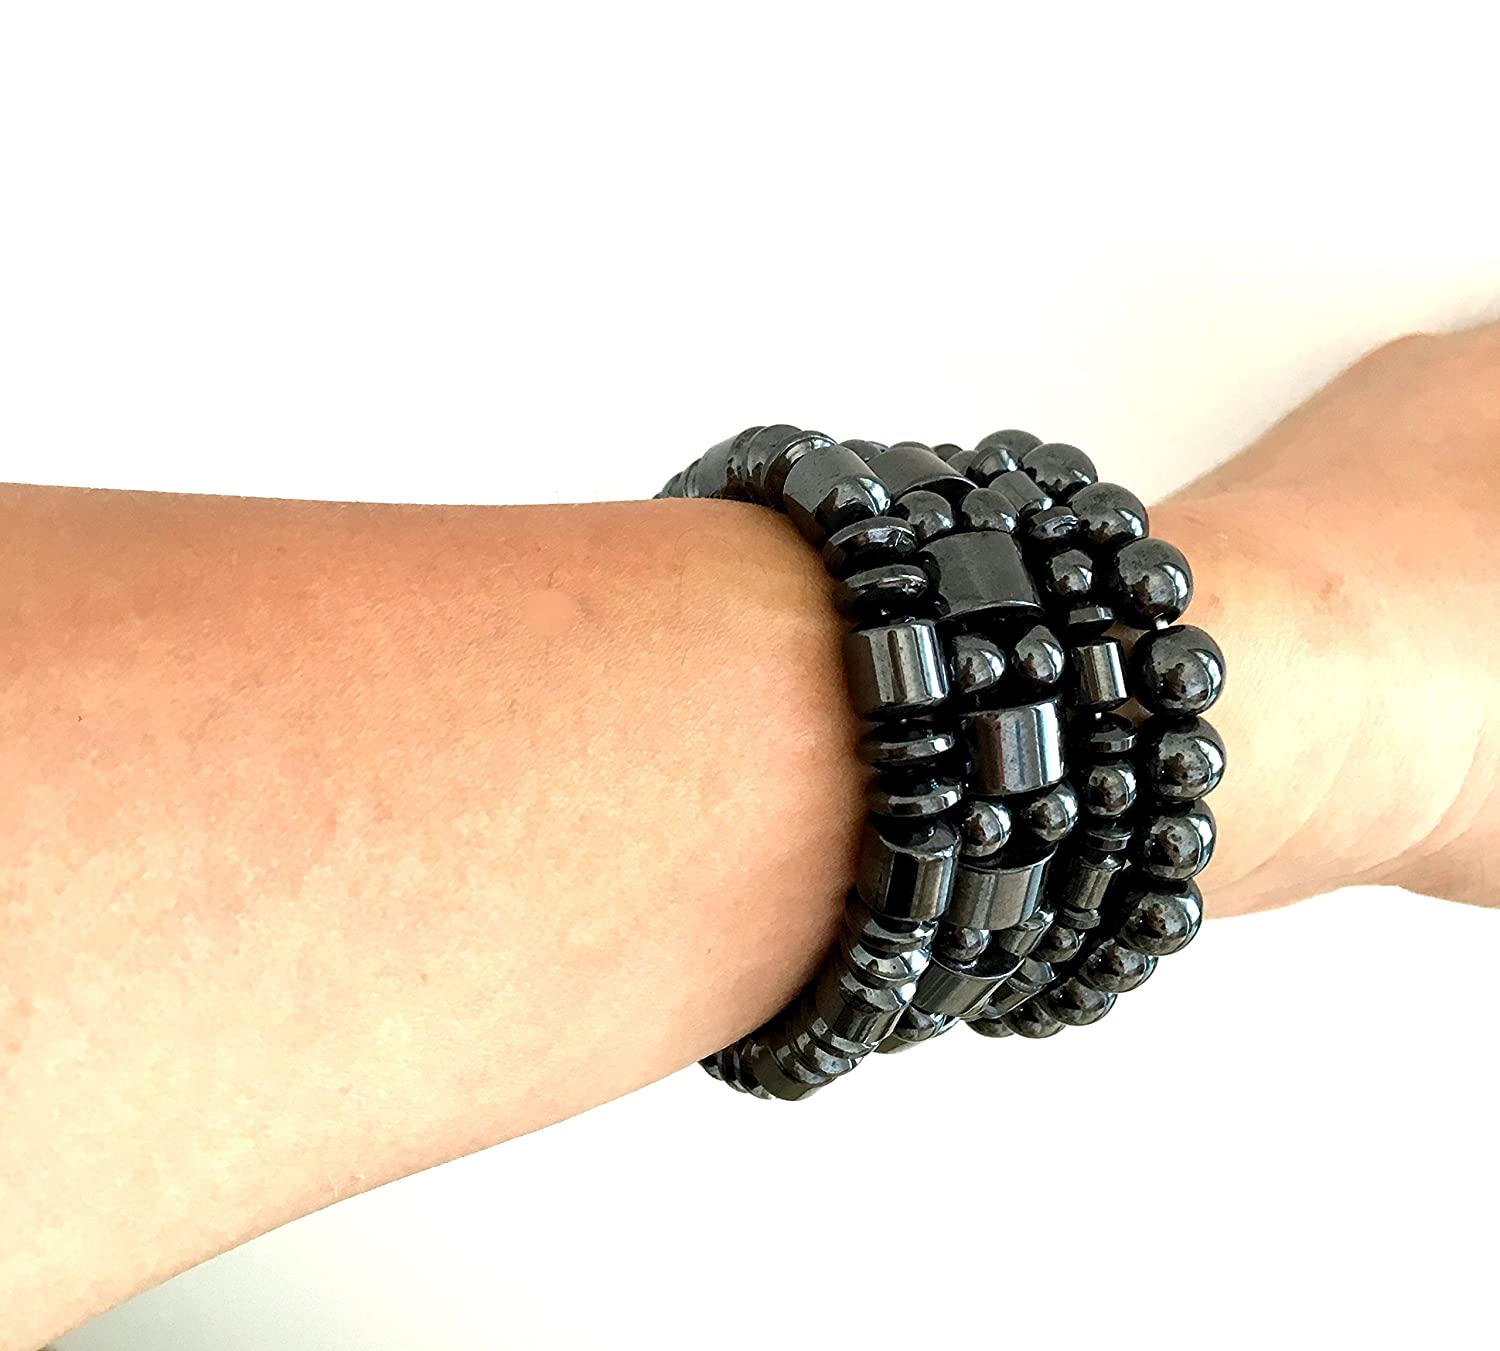 Set of 4 Hematite Powerful Magnetic Bracelet for Arthritis Pain Releif or for Sports Related Therapy